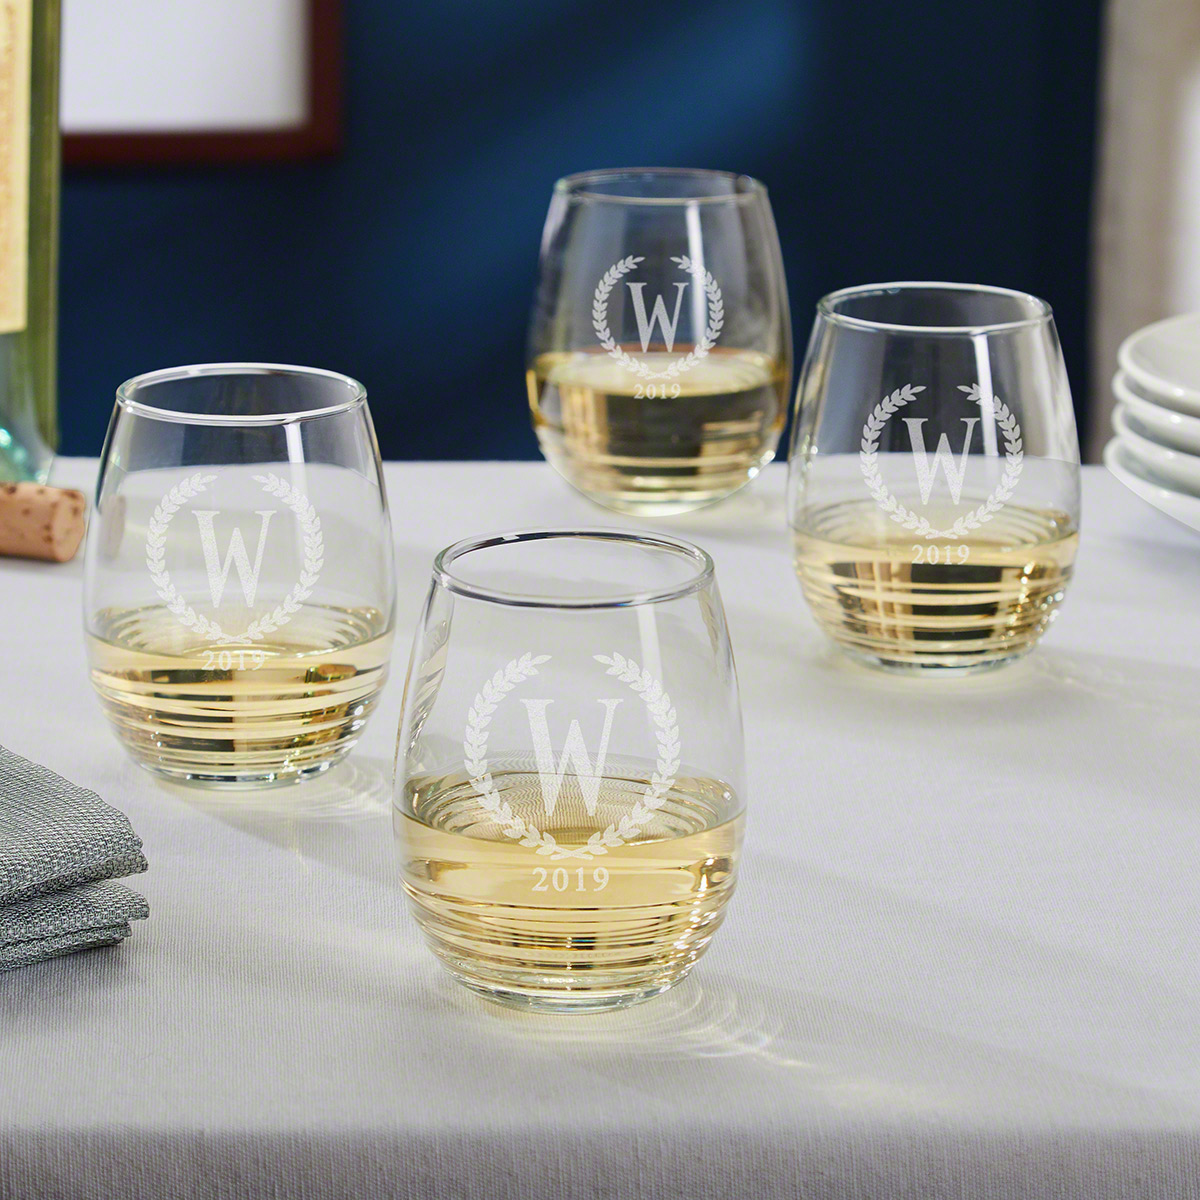 Statesman Personalized Stemless White Wine Glasses Set of 4